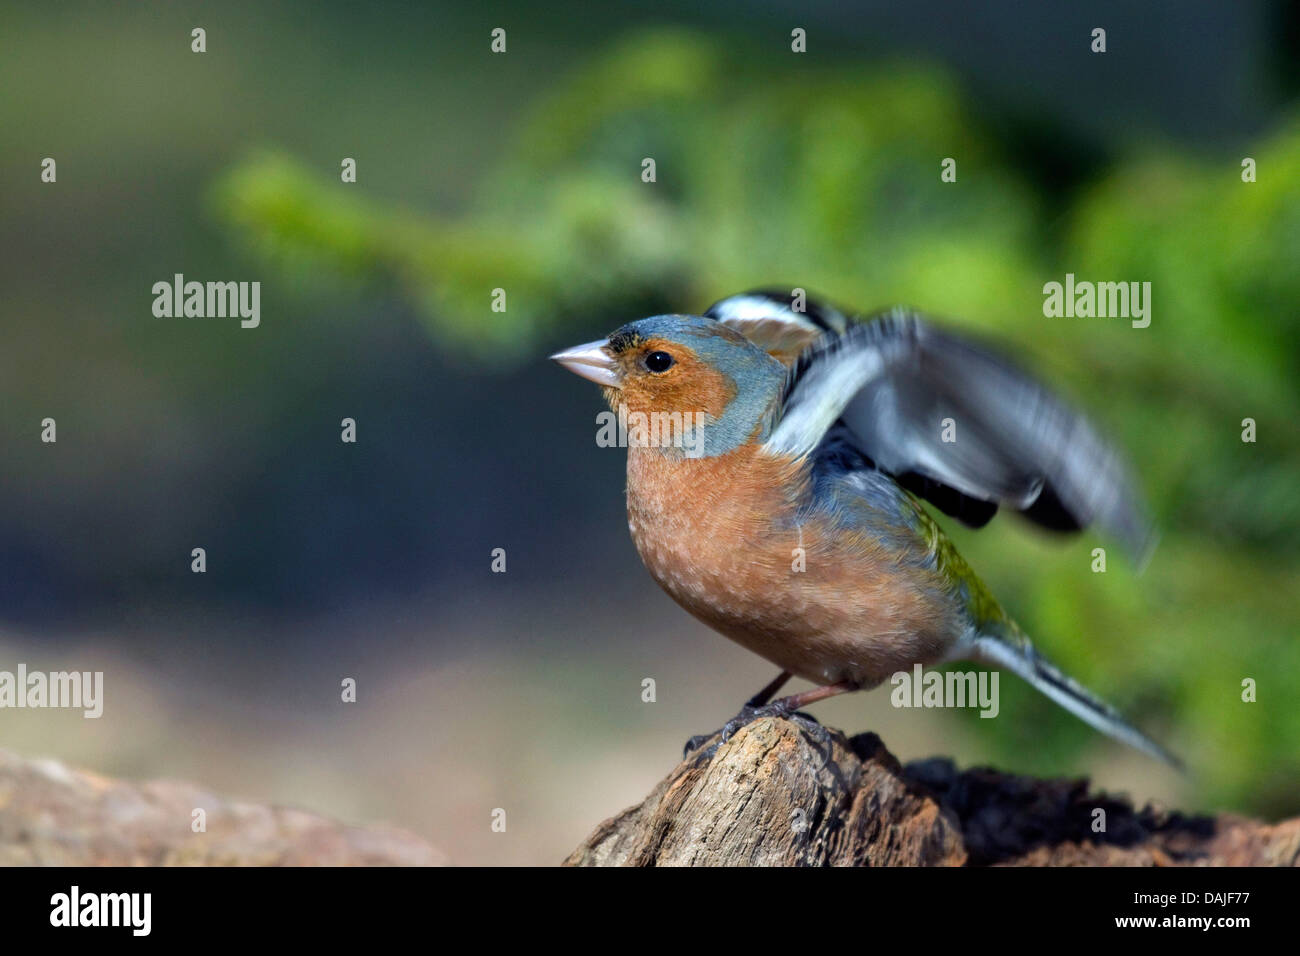 chaffinch (Fringilla coelebs), male in nuptial colouration flapping wings, Germany - Stock Image